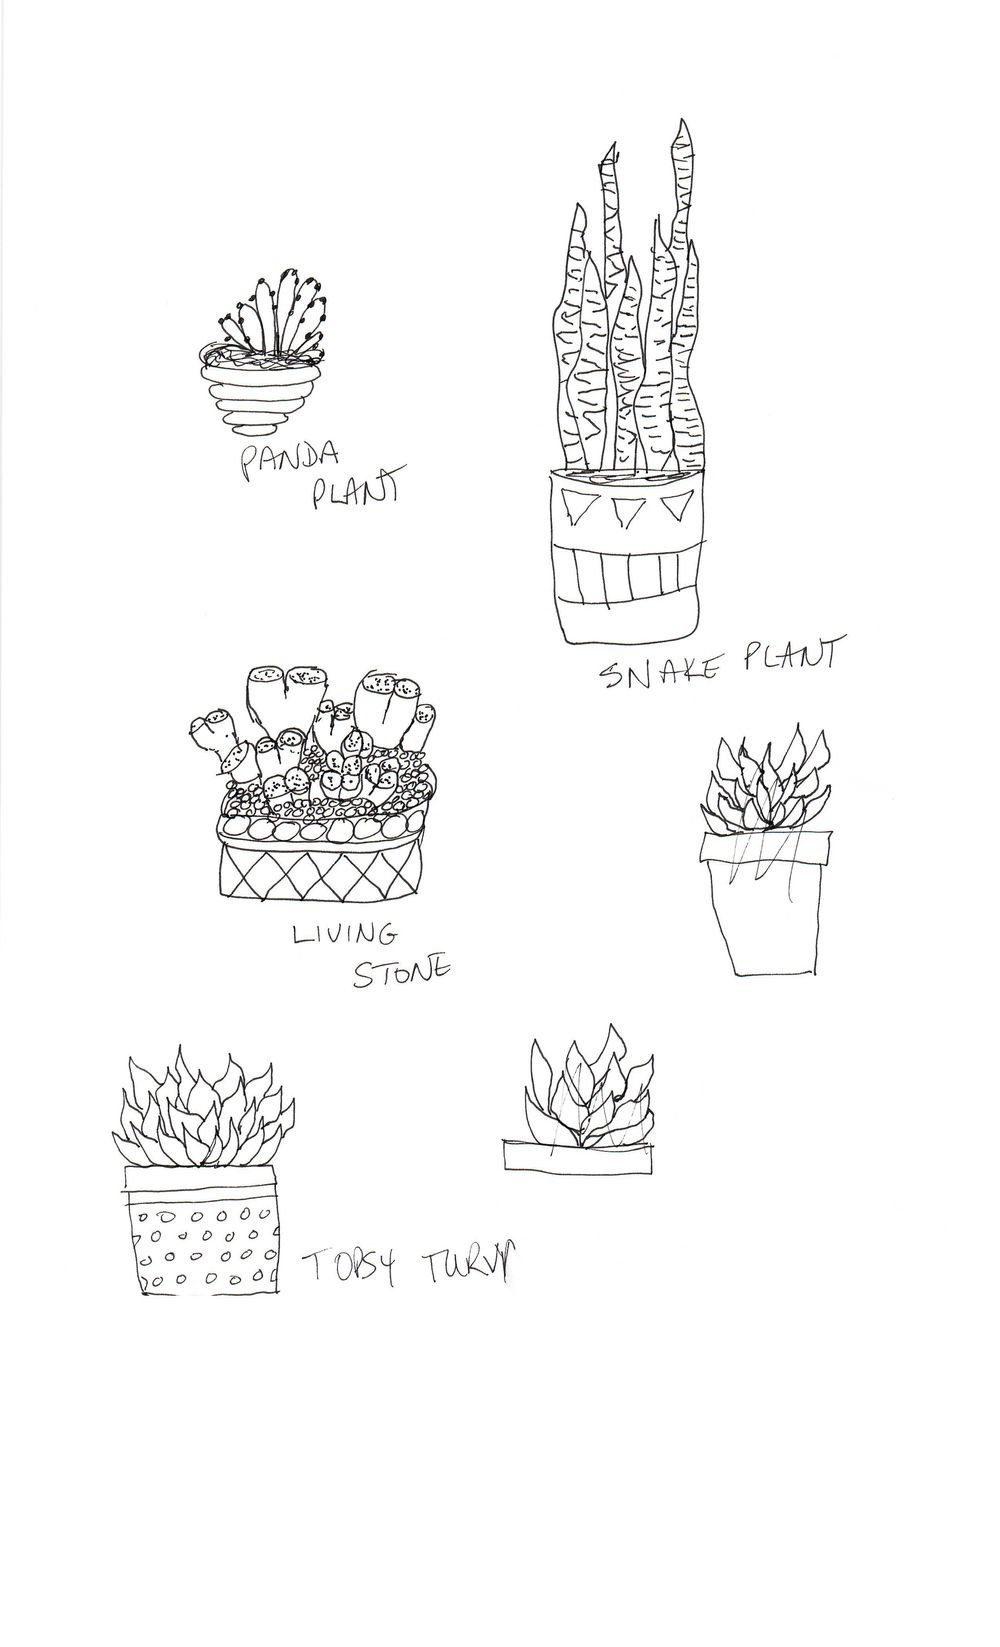 Practice Practice Practice Cactus cactus cactus. - image 6 - student project